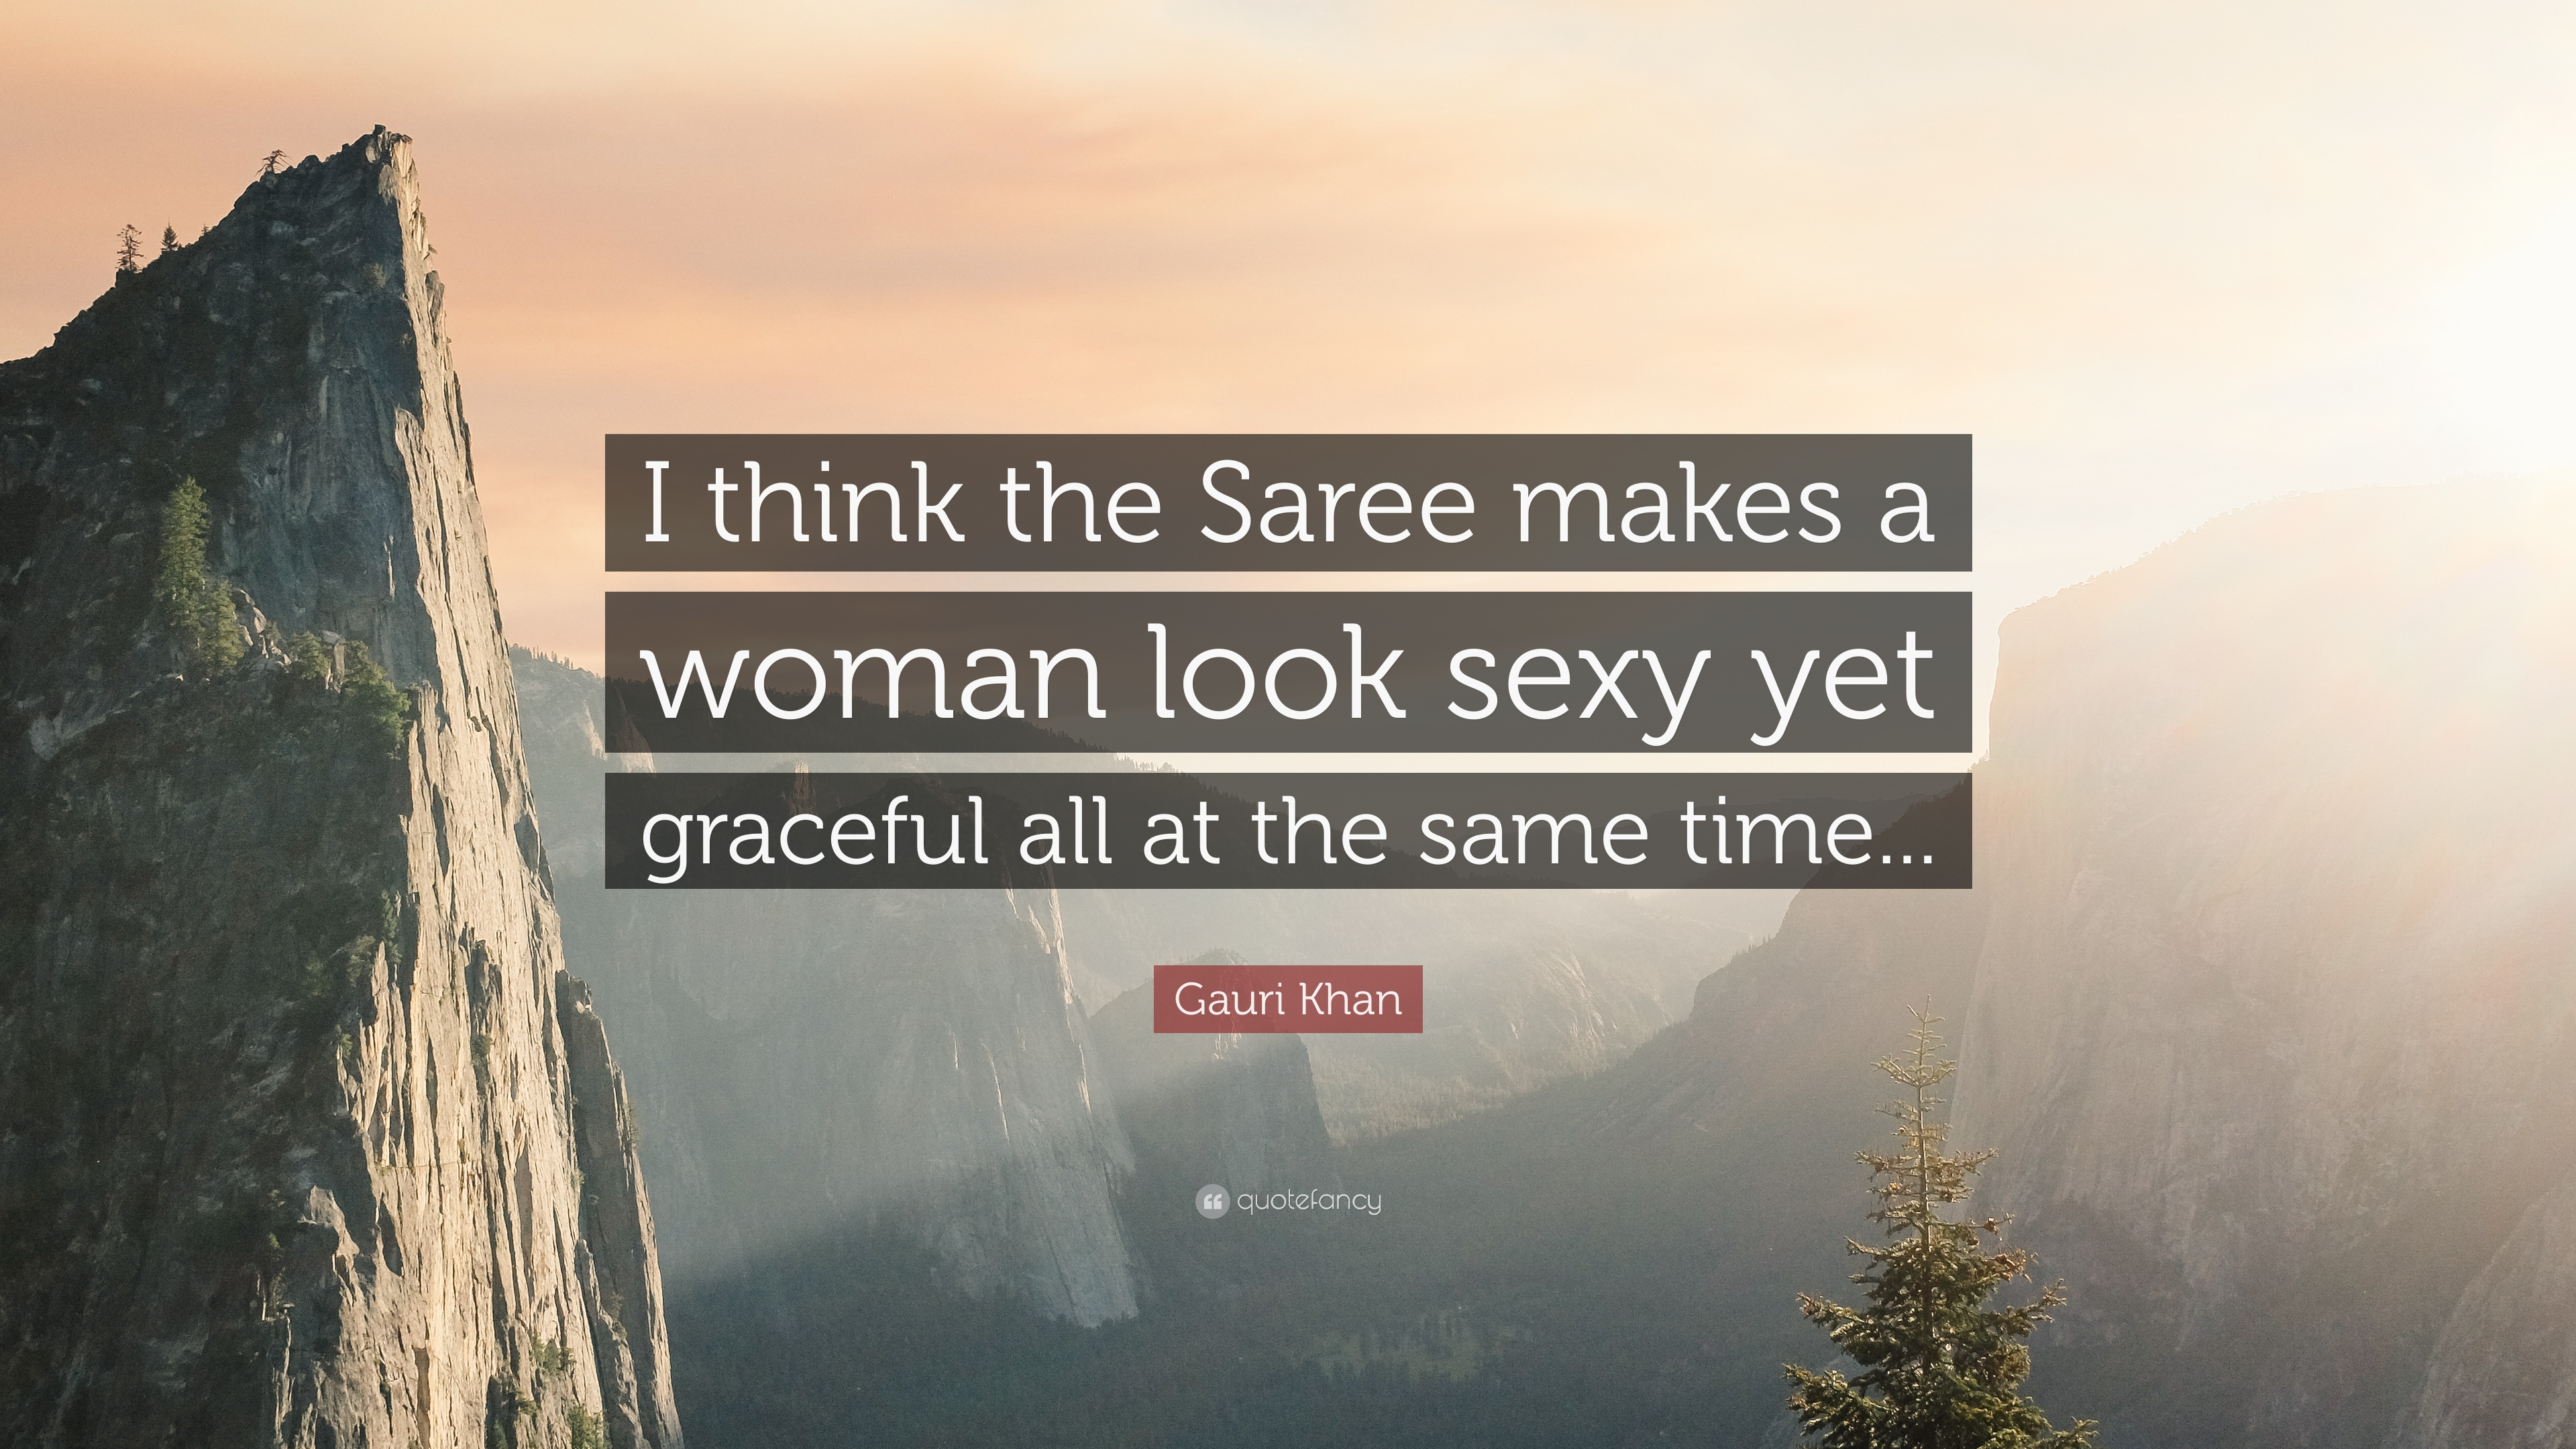 what makes a woman look sexy